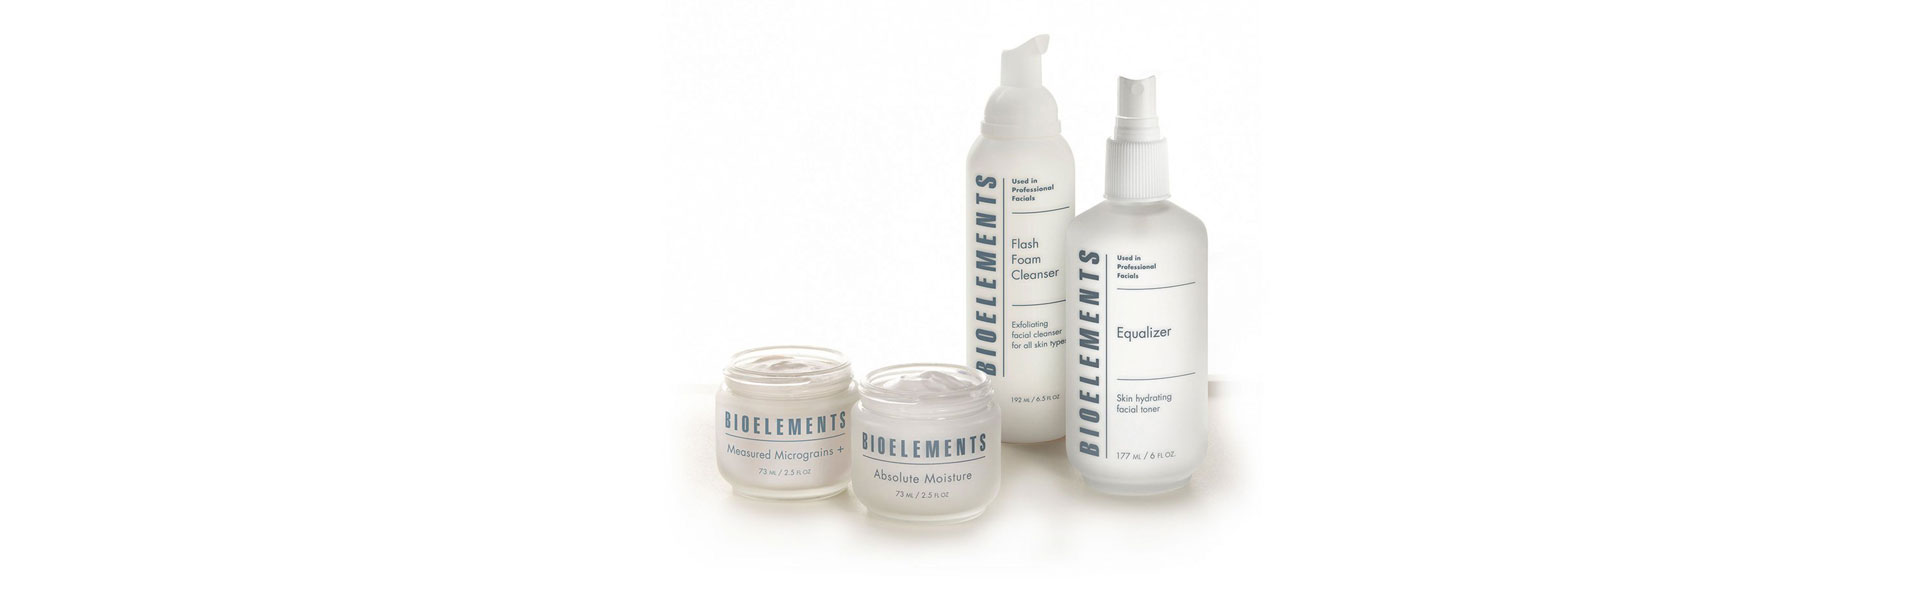 image of skin care products